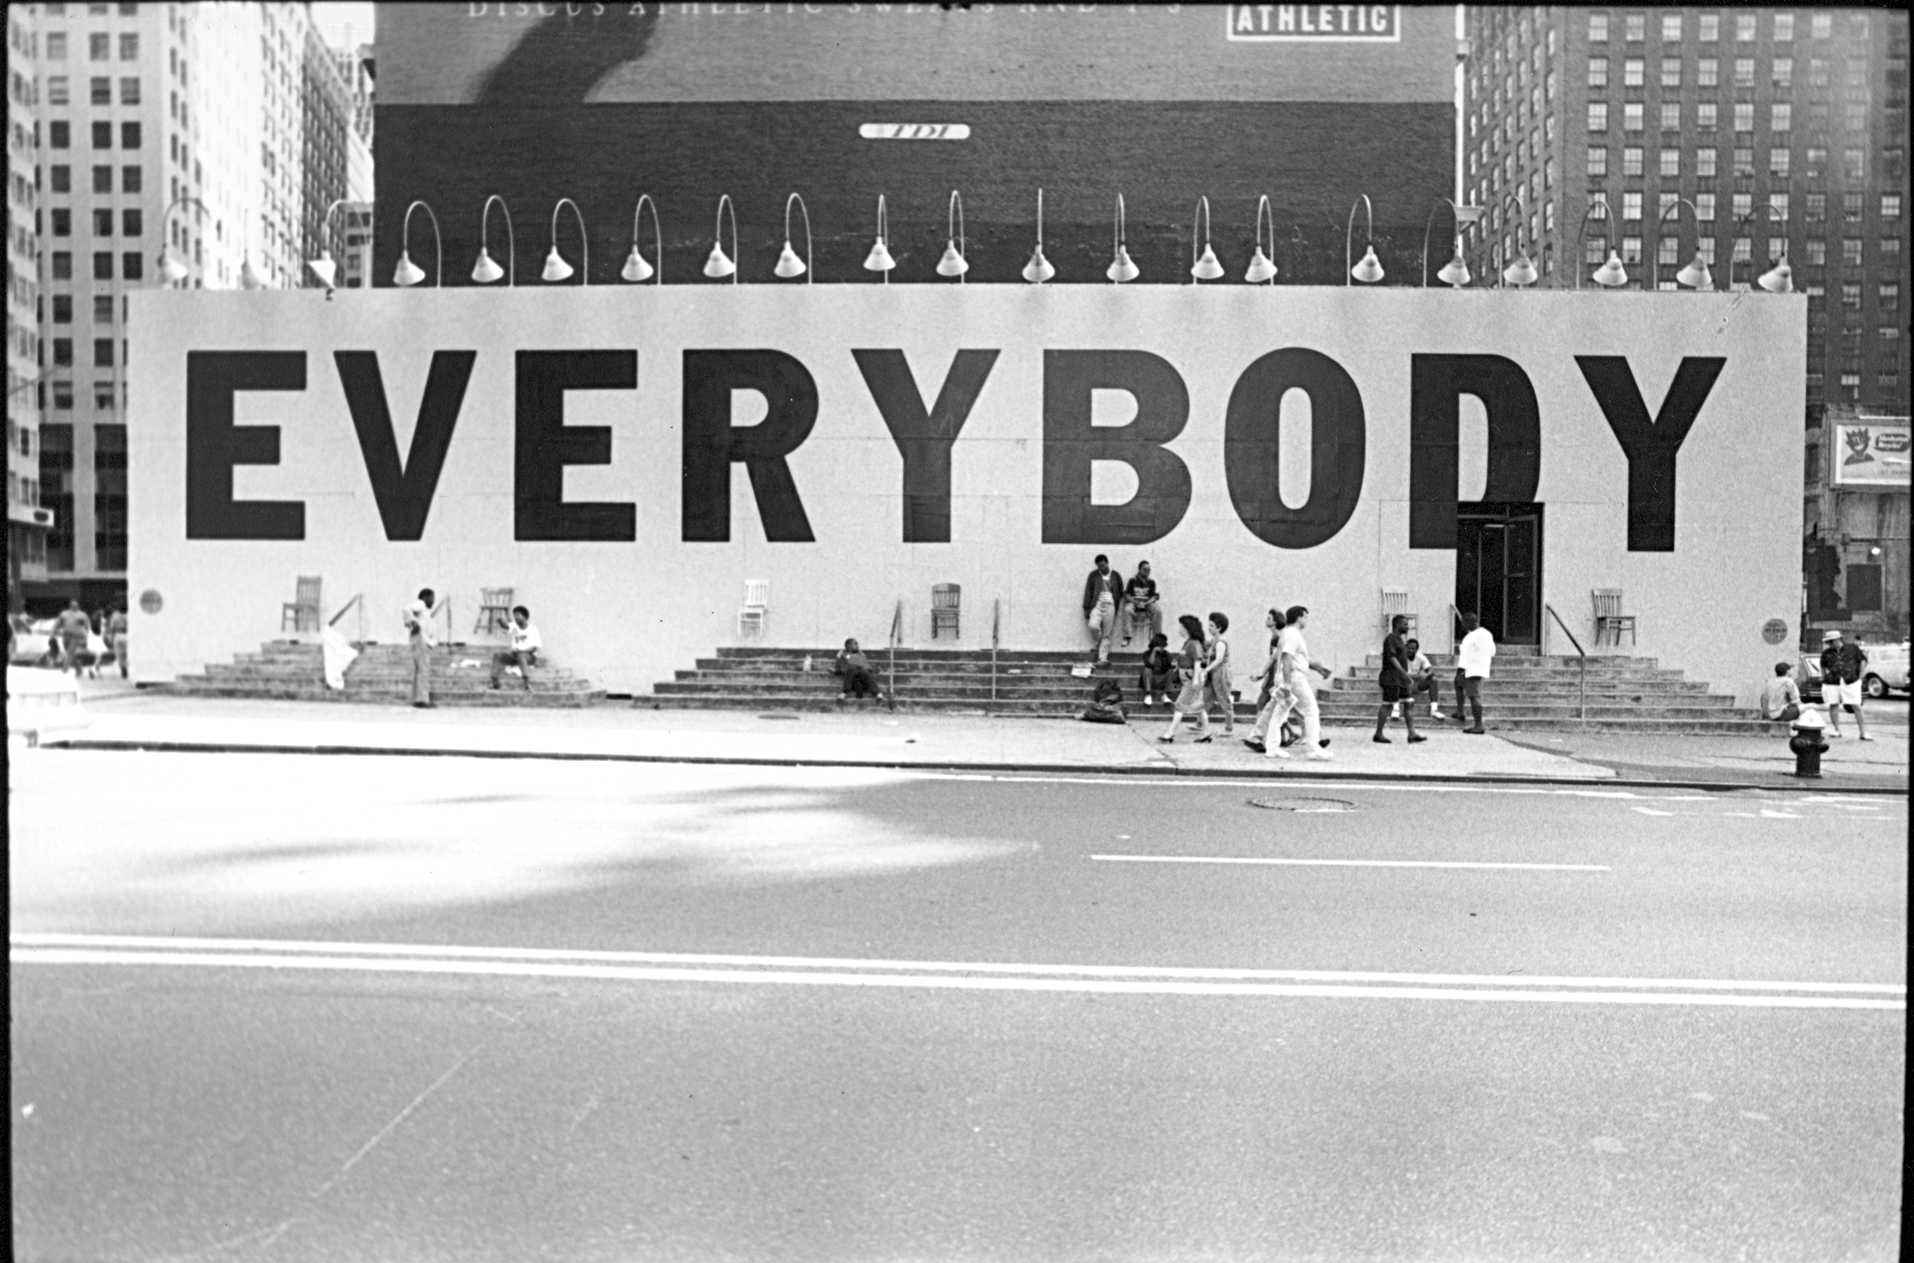 """The famous """"Everybody"""" billboard, designed by Tibor Kalman, that the 42nd Street Development project commissioned with Creative Time to bring people back to the block once the stores and buildings had been condemned. Credit: Maggie Hopp for Creative Time"""